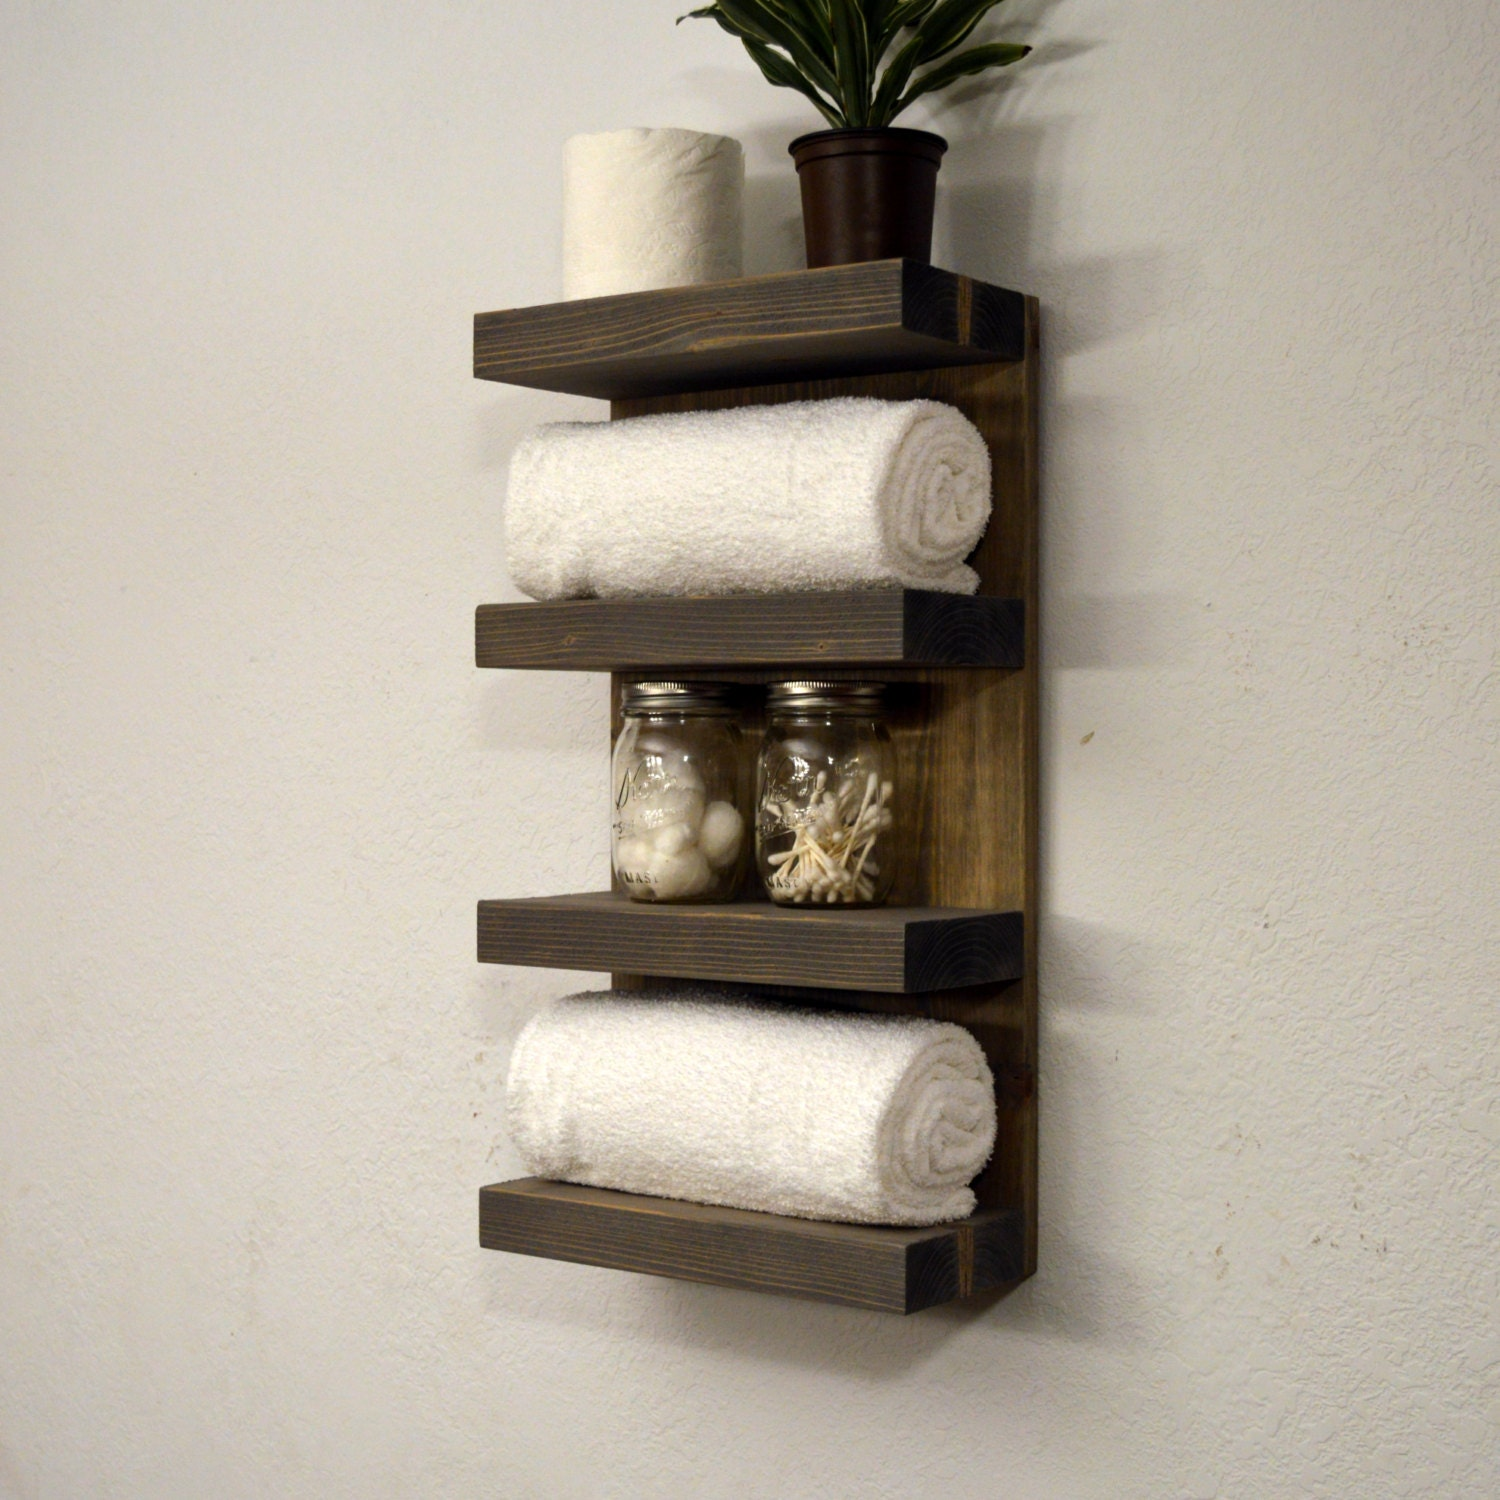 Hotel Style Towel Rack 4 Tier Bath Storage By Rusticmoderndecor